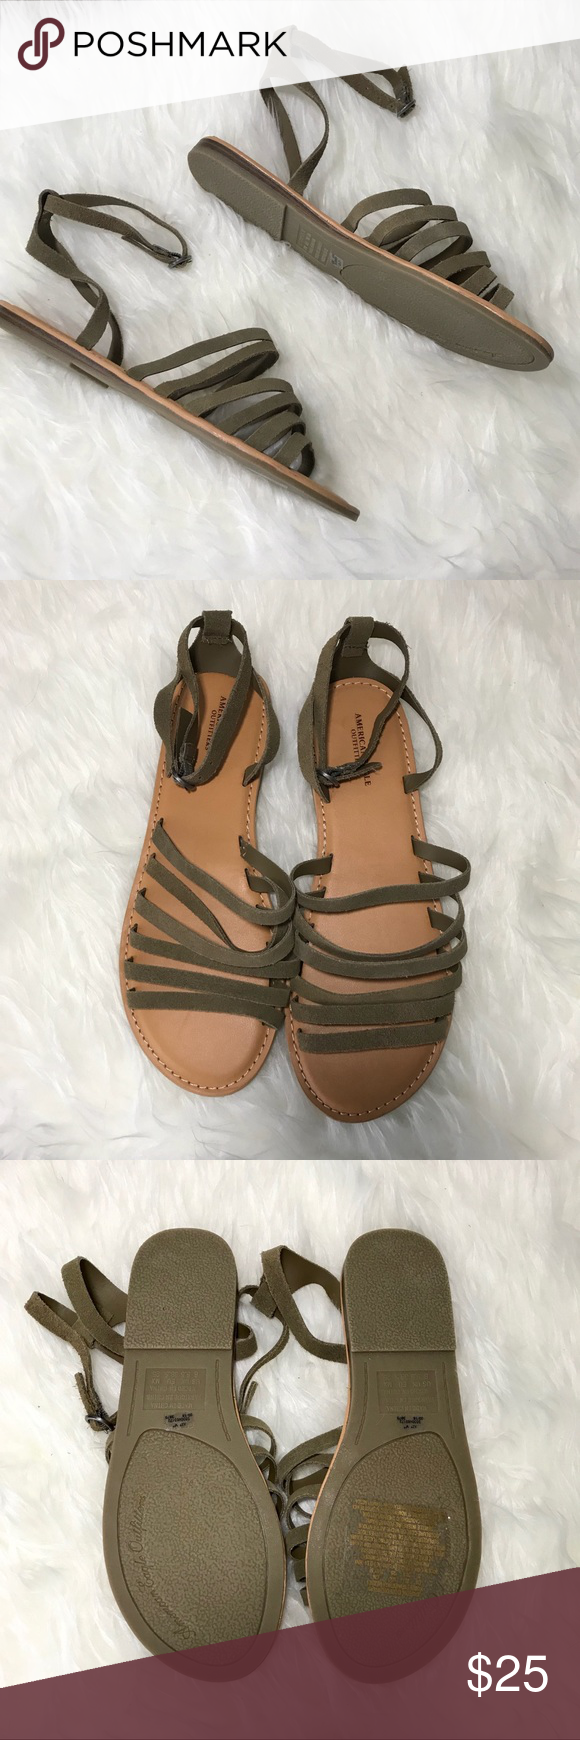 0a8af0849af7 AEO Sandals American Eagle Outfitter Sandals. Brand new never worn. Straps  are olive green. American Eagle Outfitters Shoes Sandals